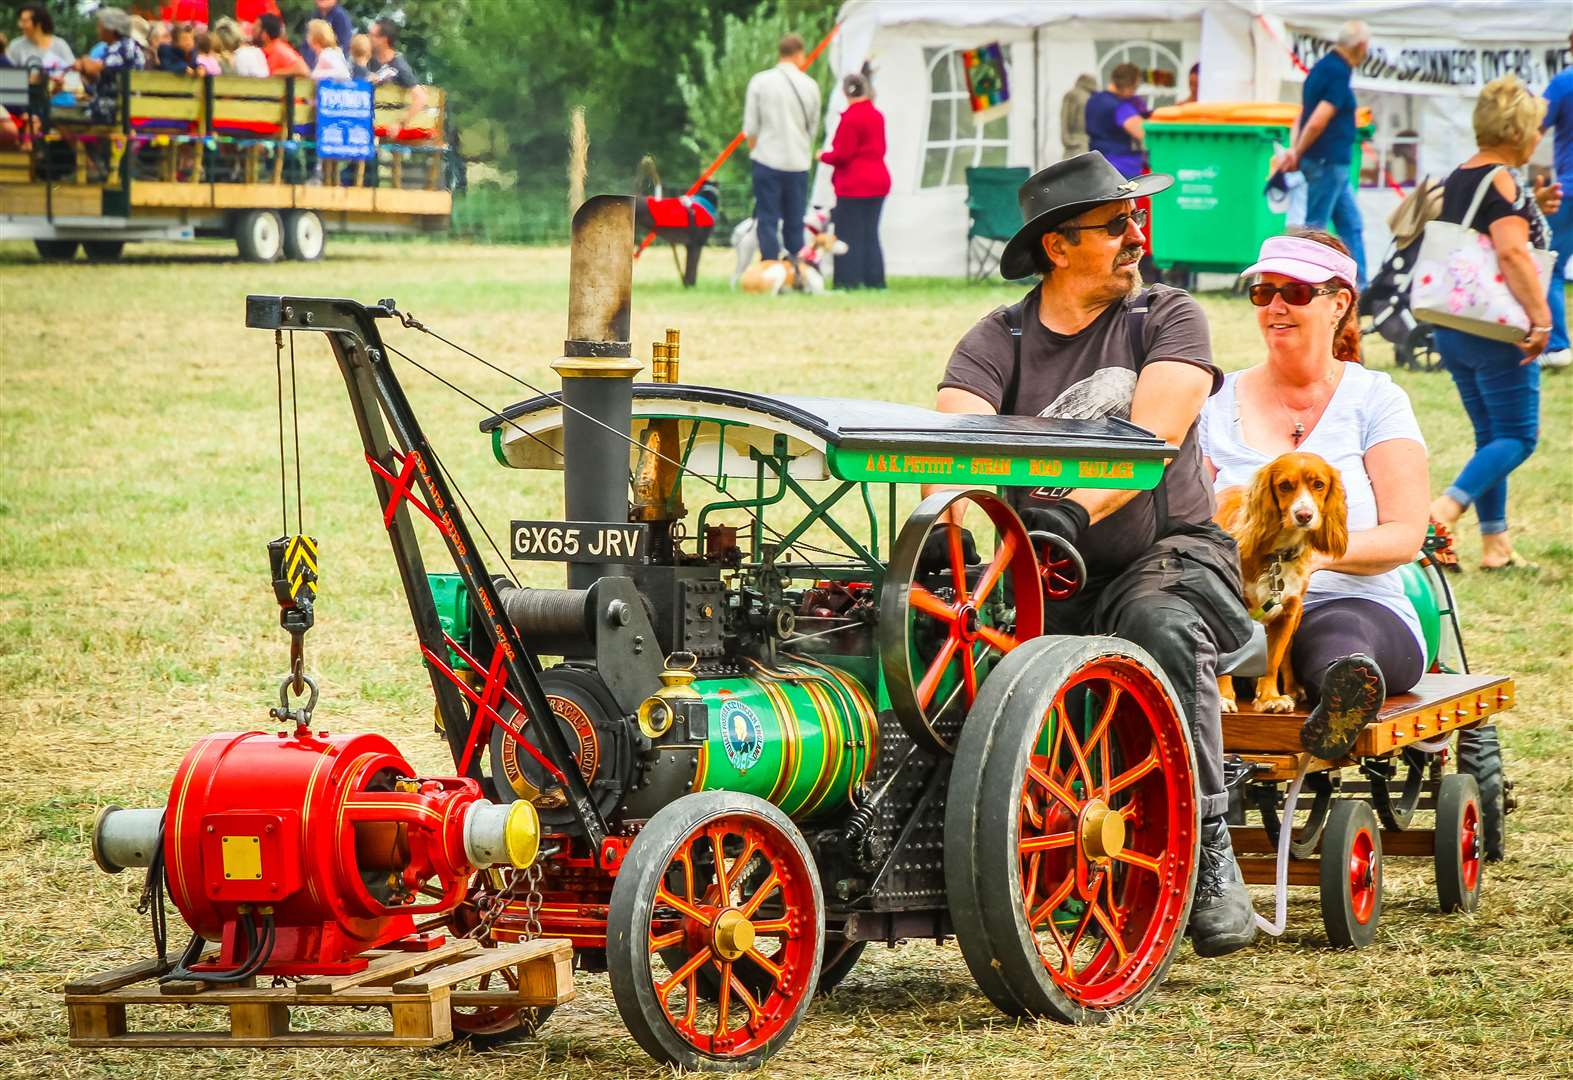 More than 200 tractors will be at the Biddenden Tractorfest this weekend